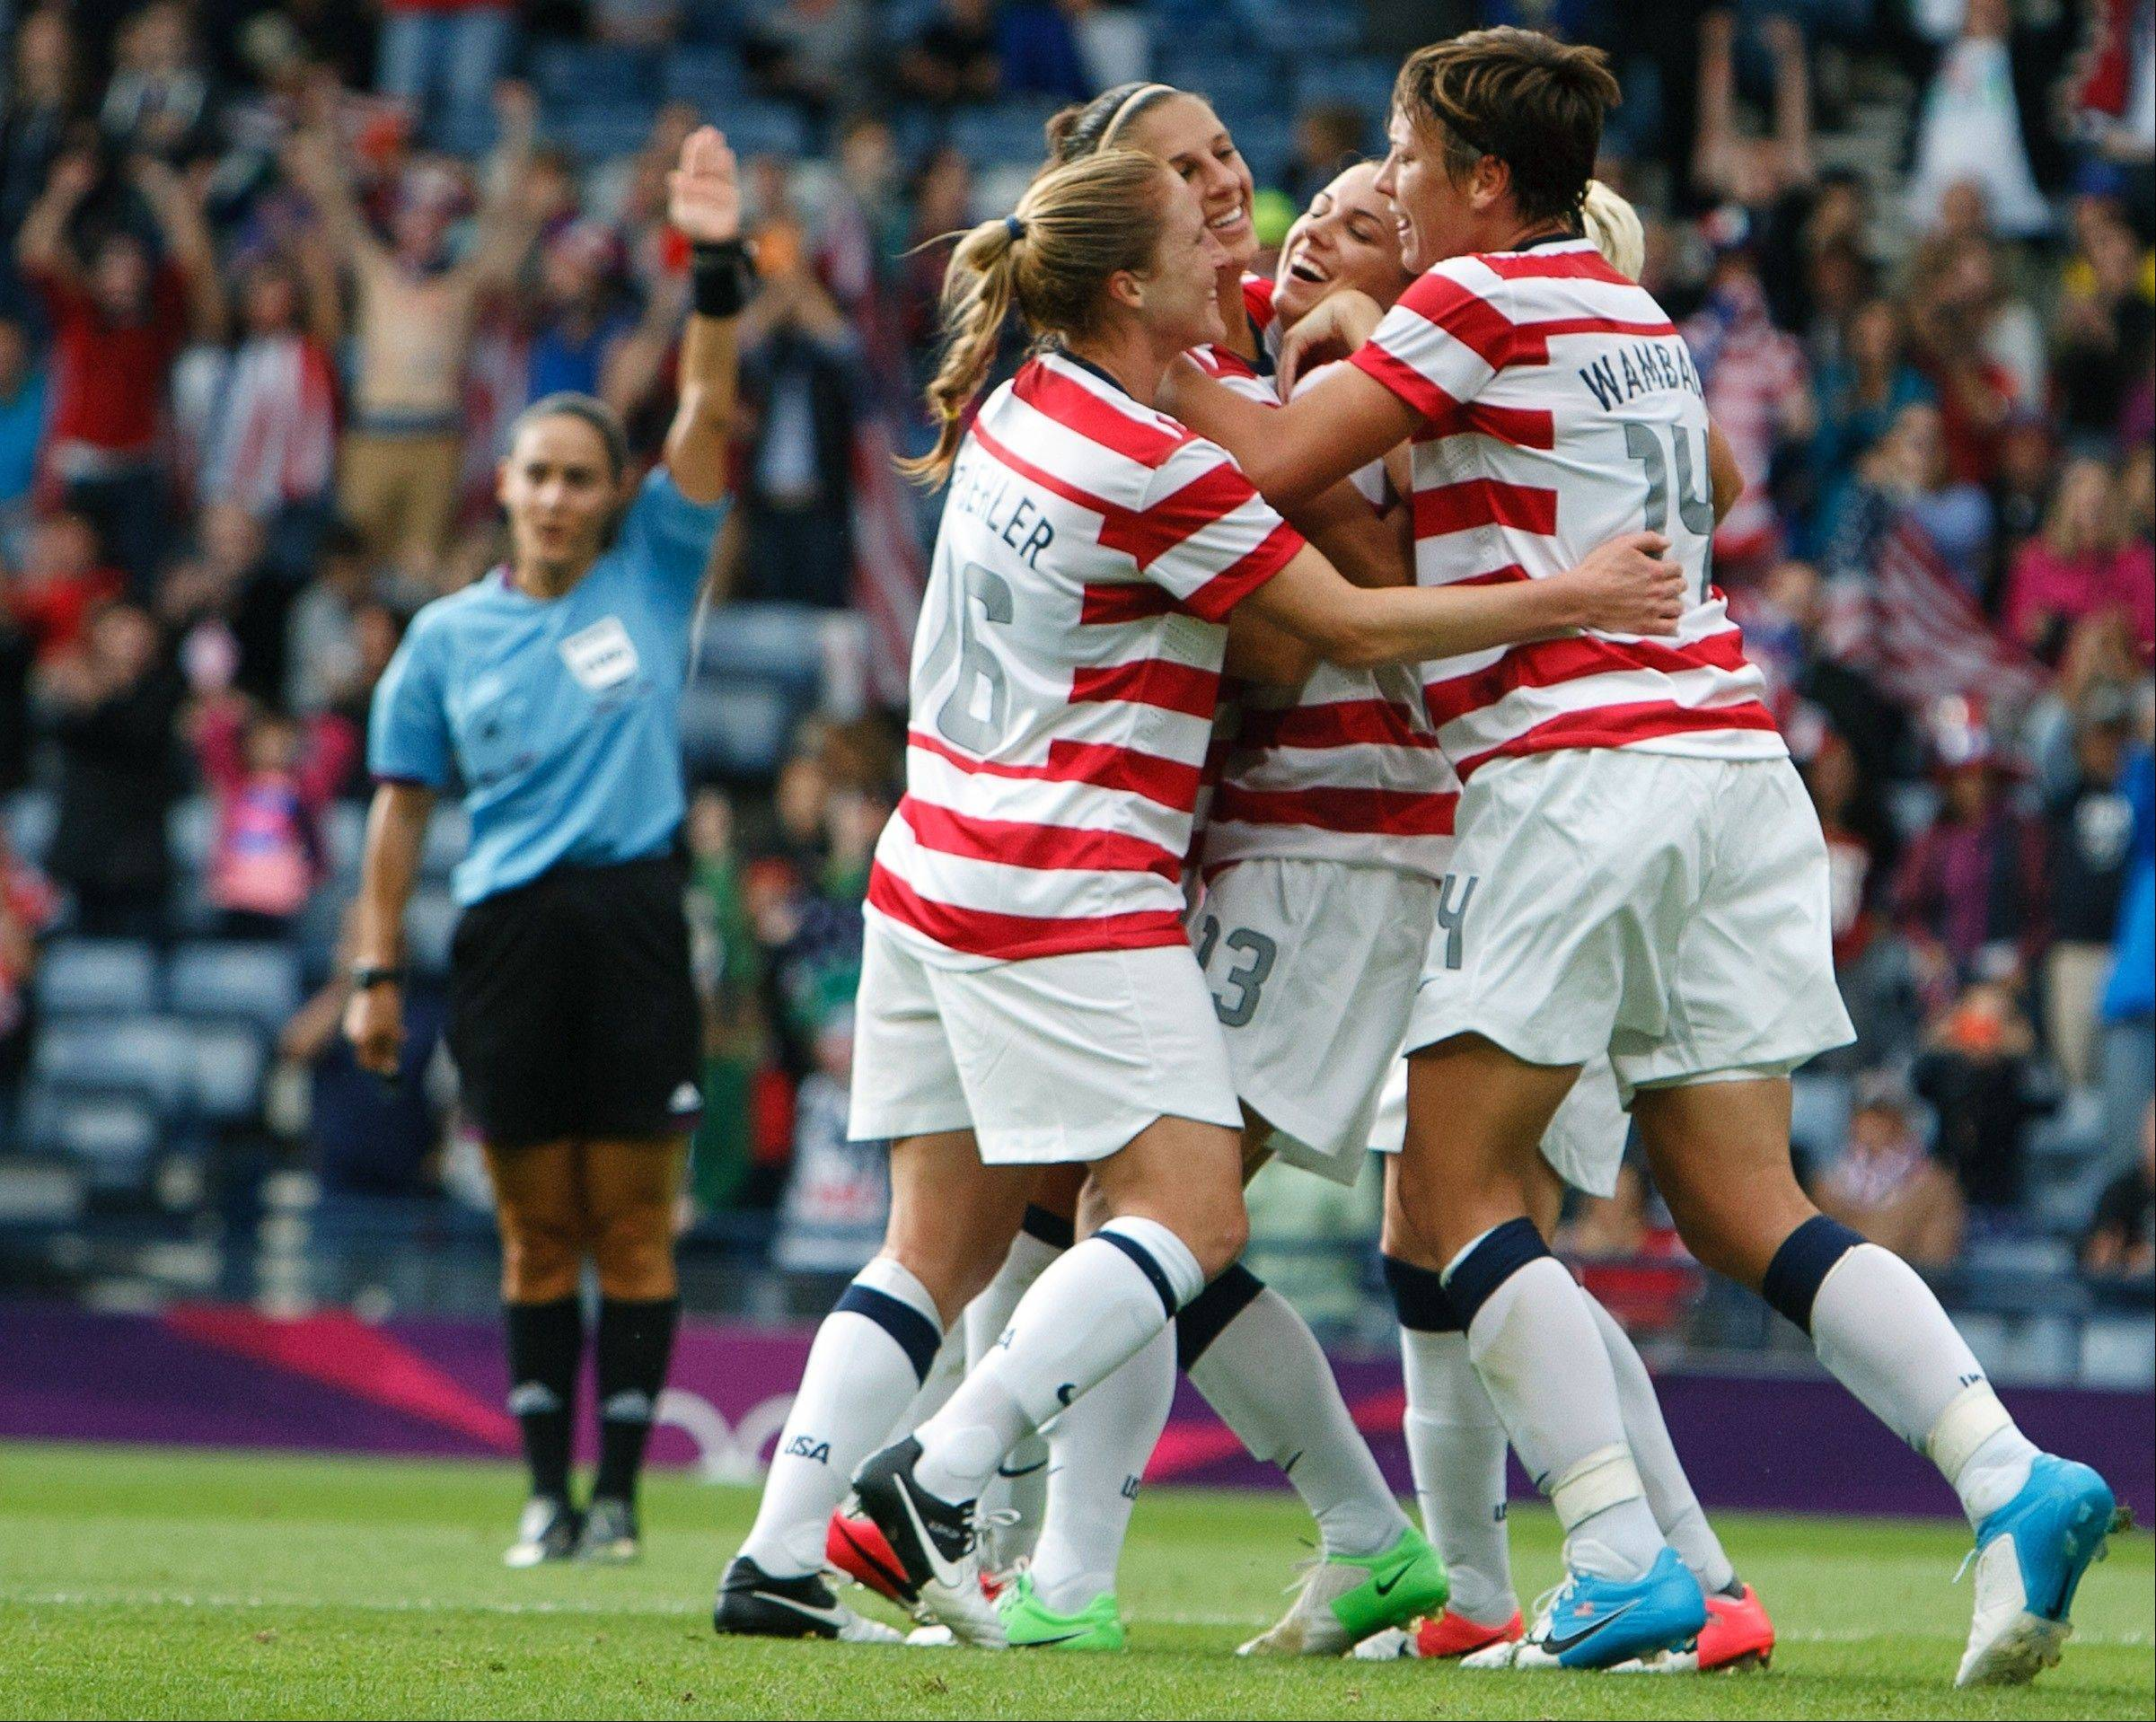 U.S. players celebrate after scoring the opening goal in a match against Colombia on Saturday in Scotland. With the 3-0 win, Team USA advanced to the Olympic quarterfinals.